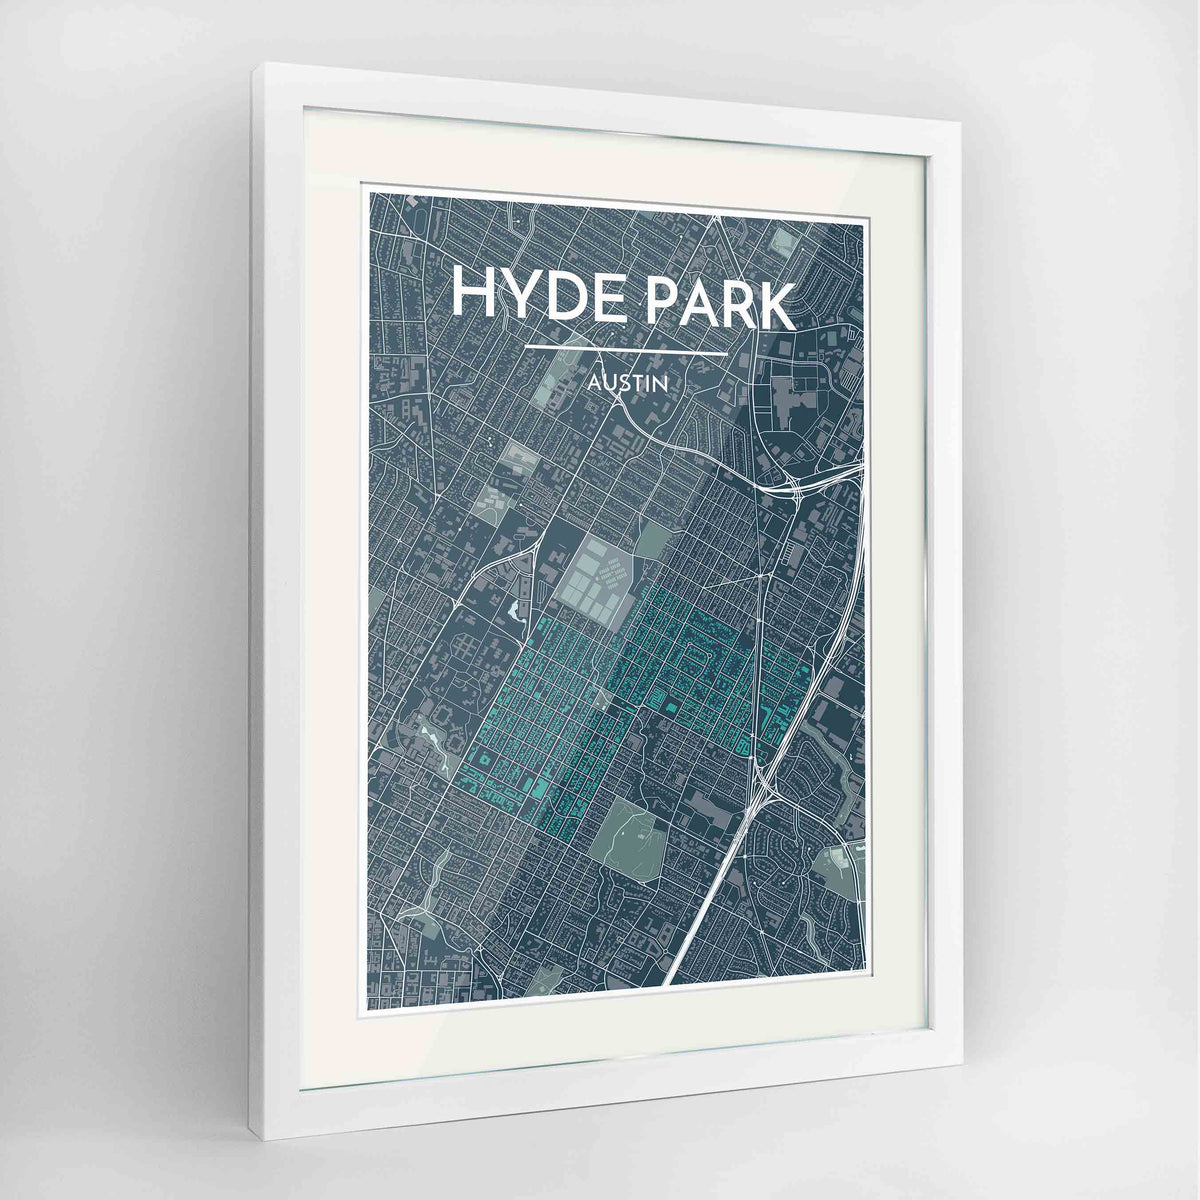 "Framed Hyde Park Neighbourhood of Austin Map Art Print 24x36"" Contemporary White frame Point Two Design Group"